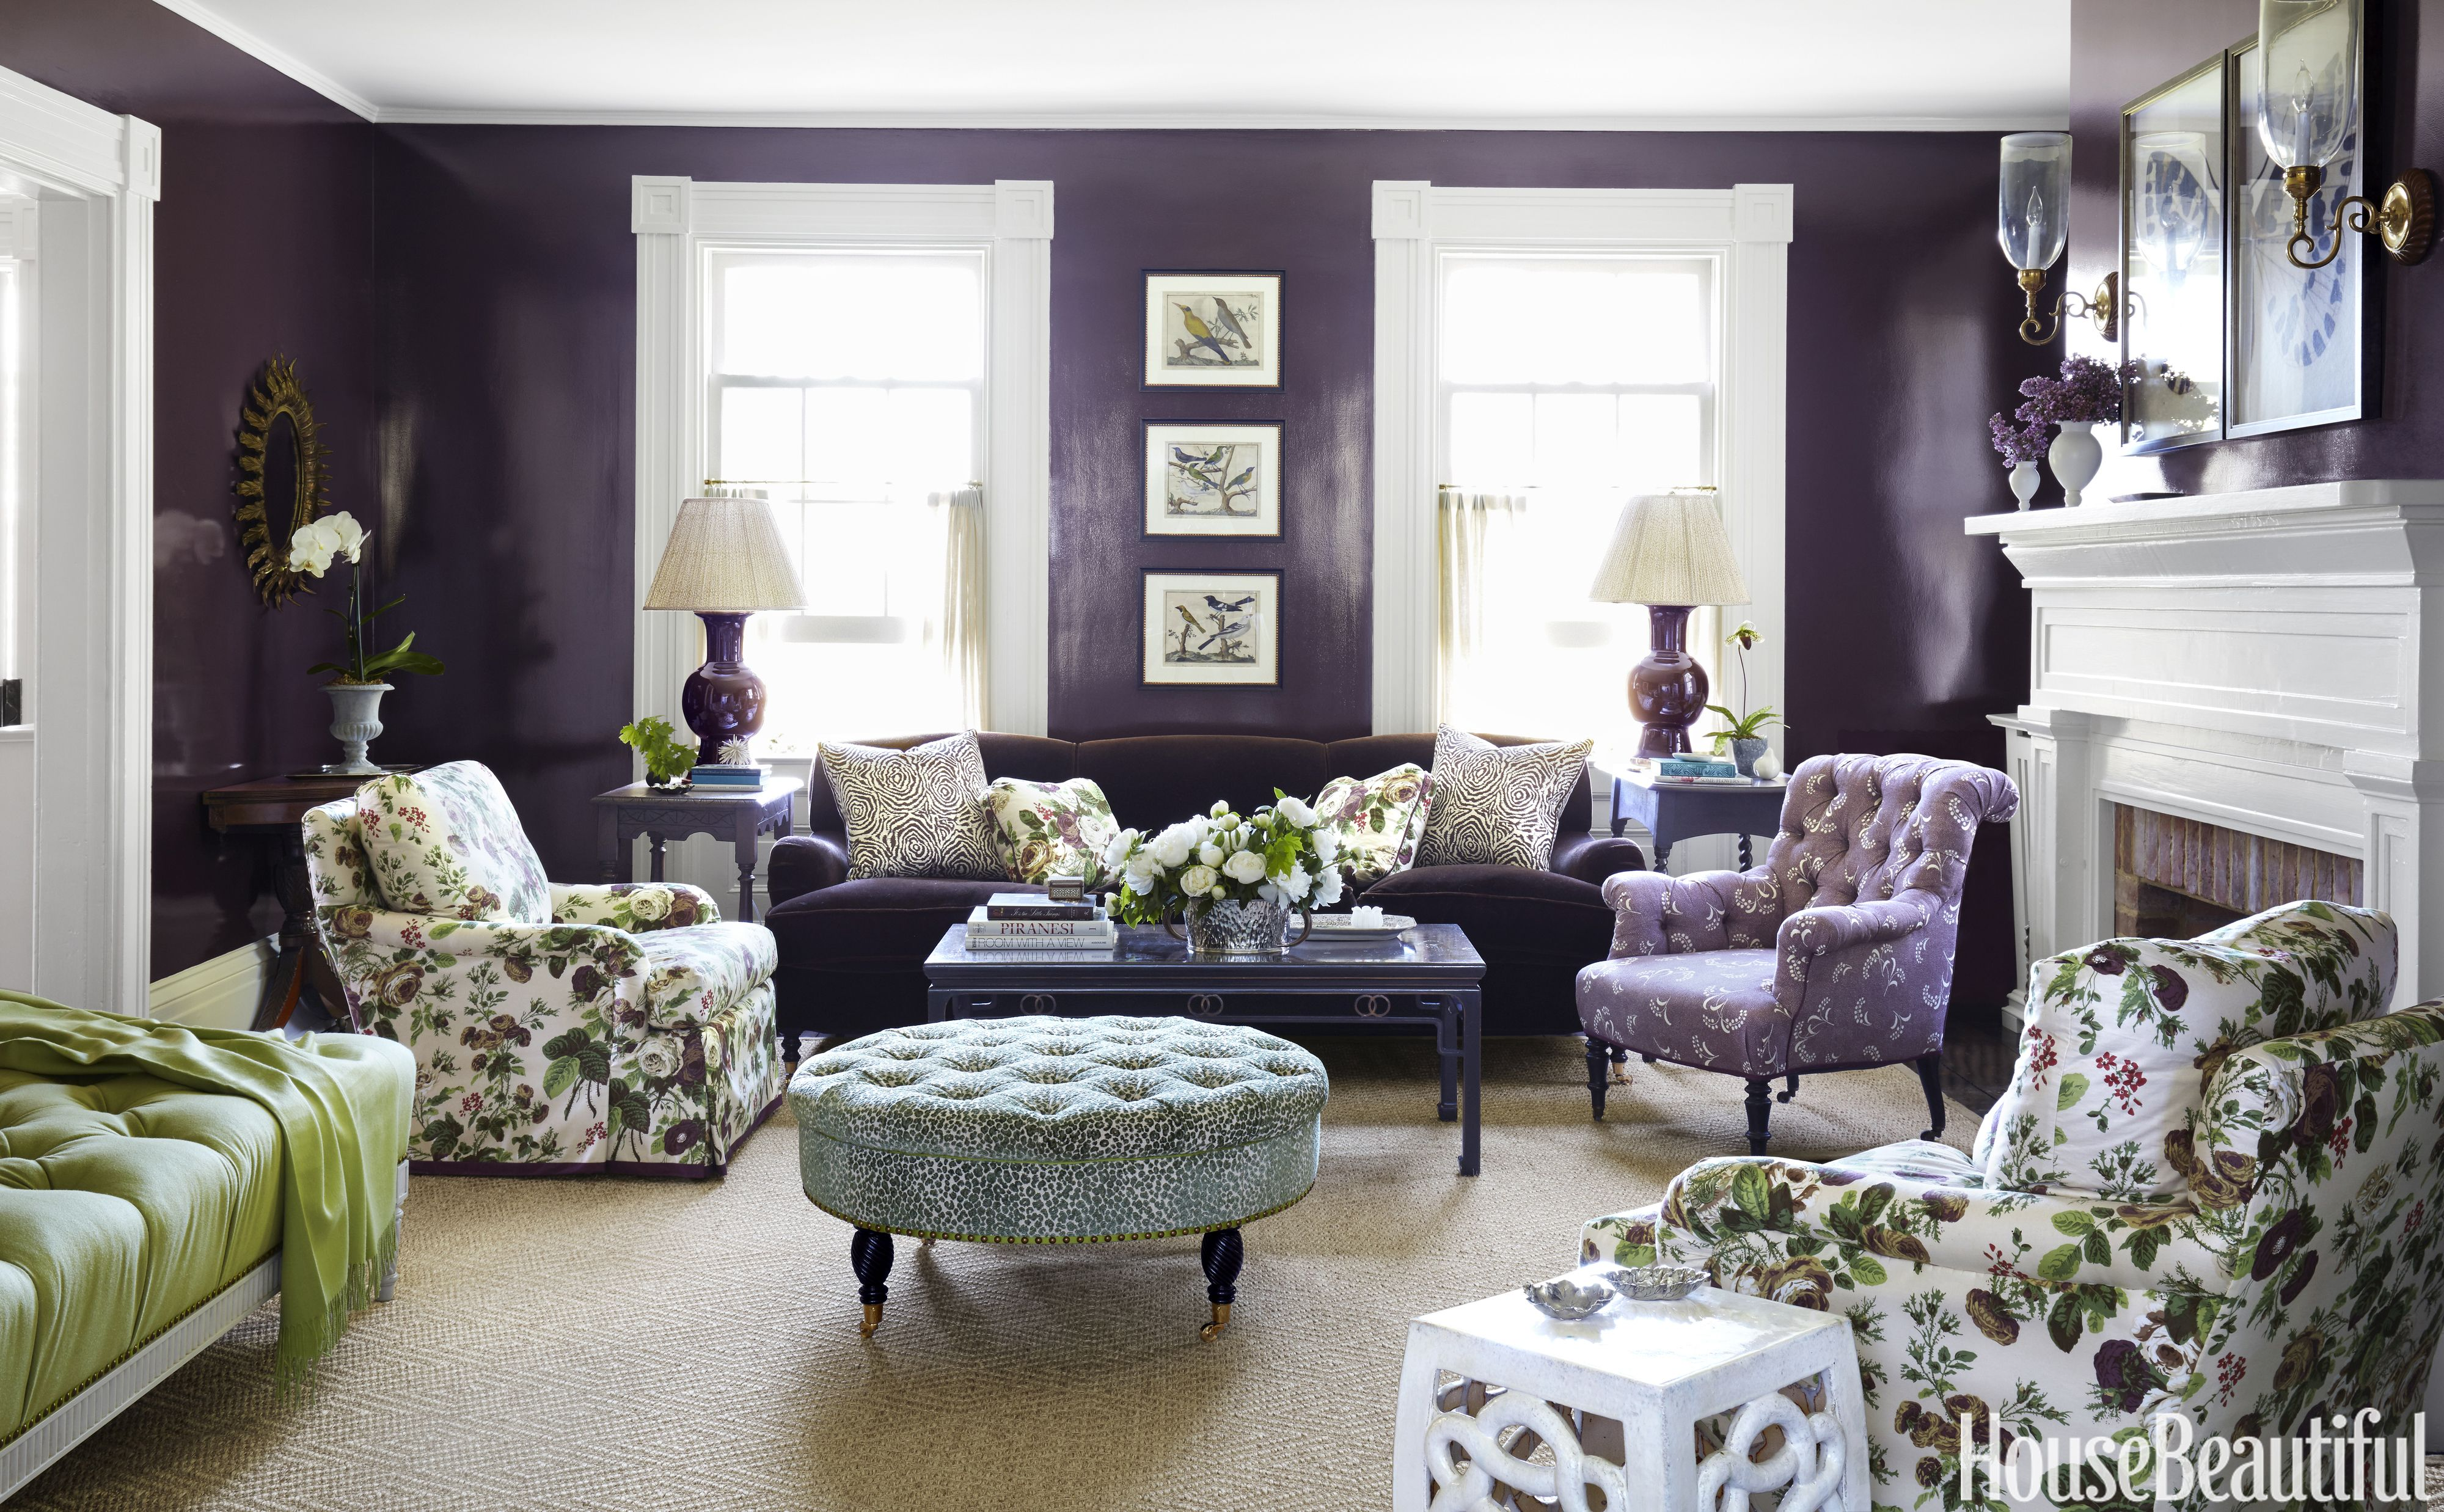 Ashley Whittaker Awesome Inside A Colorful Farmhouse  Ashley Whittaker Designs An 1823 Decorating Inspiration